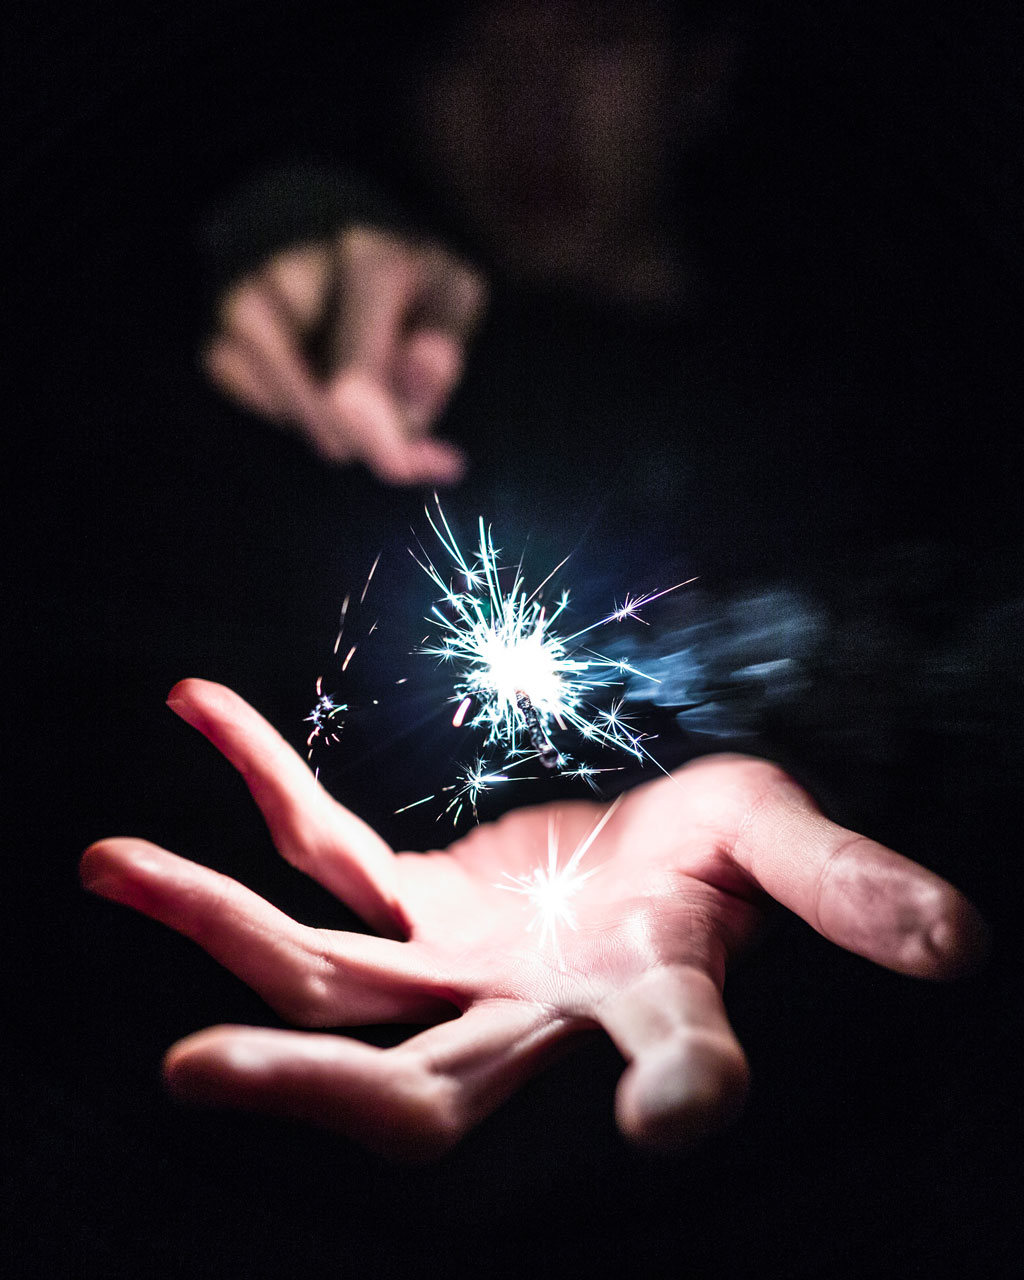 Two hands holding a sparkler in the dark